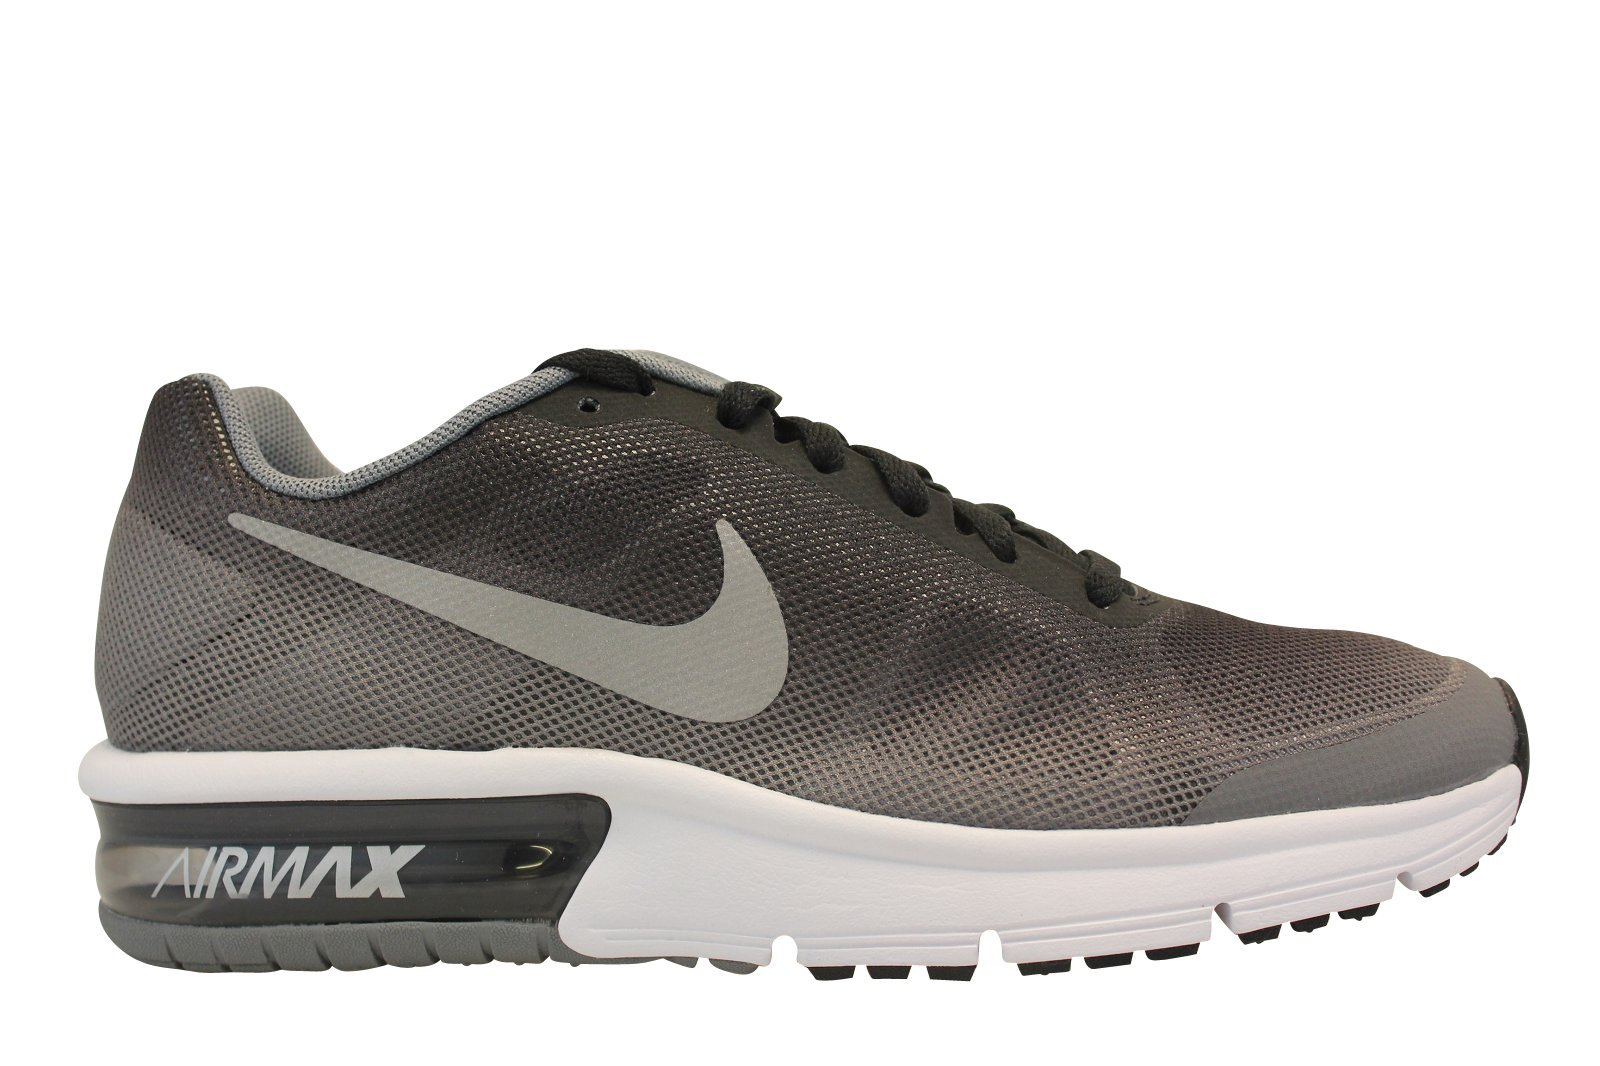 reputable site 05d51 d6355 Galleon - Nike Kids Air Max Sequent (GS) Black Metallic Siver Wolf Grey White  Running Shoe 5 Kids US